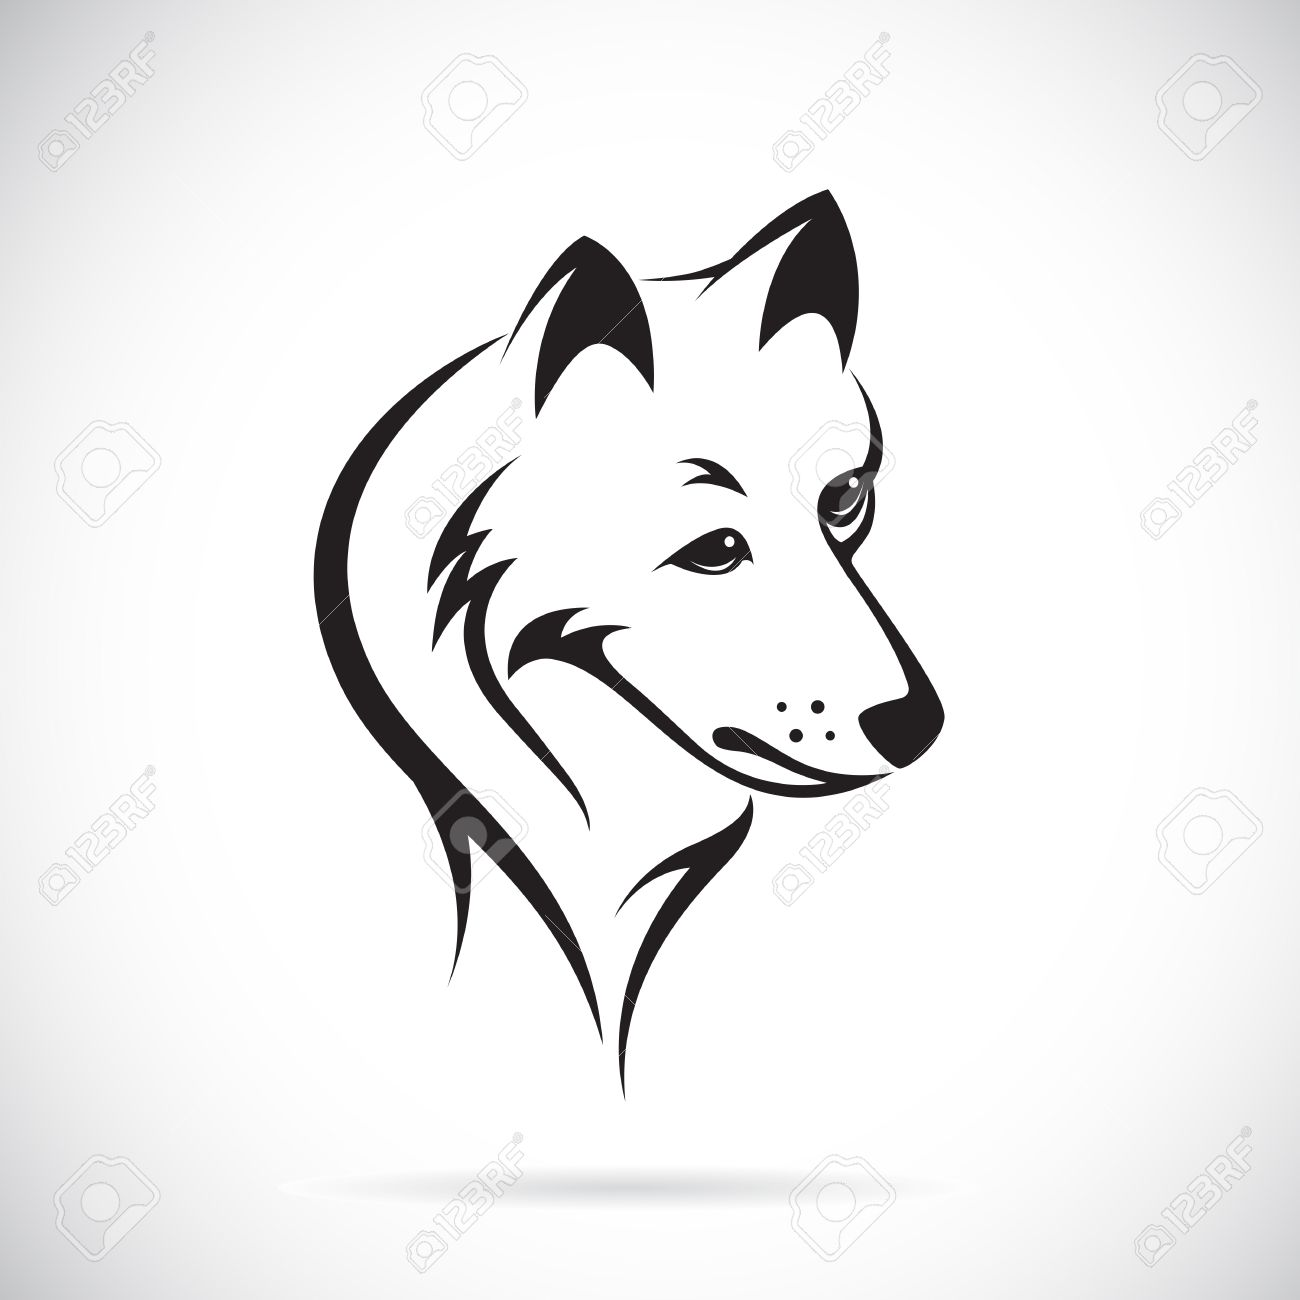 Black And White Sketch Fox: Vector Images Of Wolf Head On A White Background